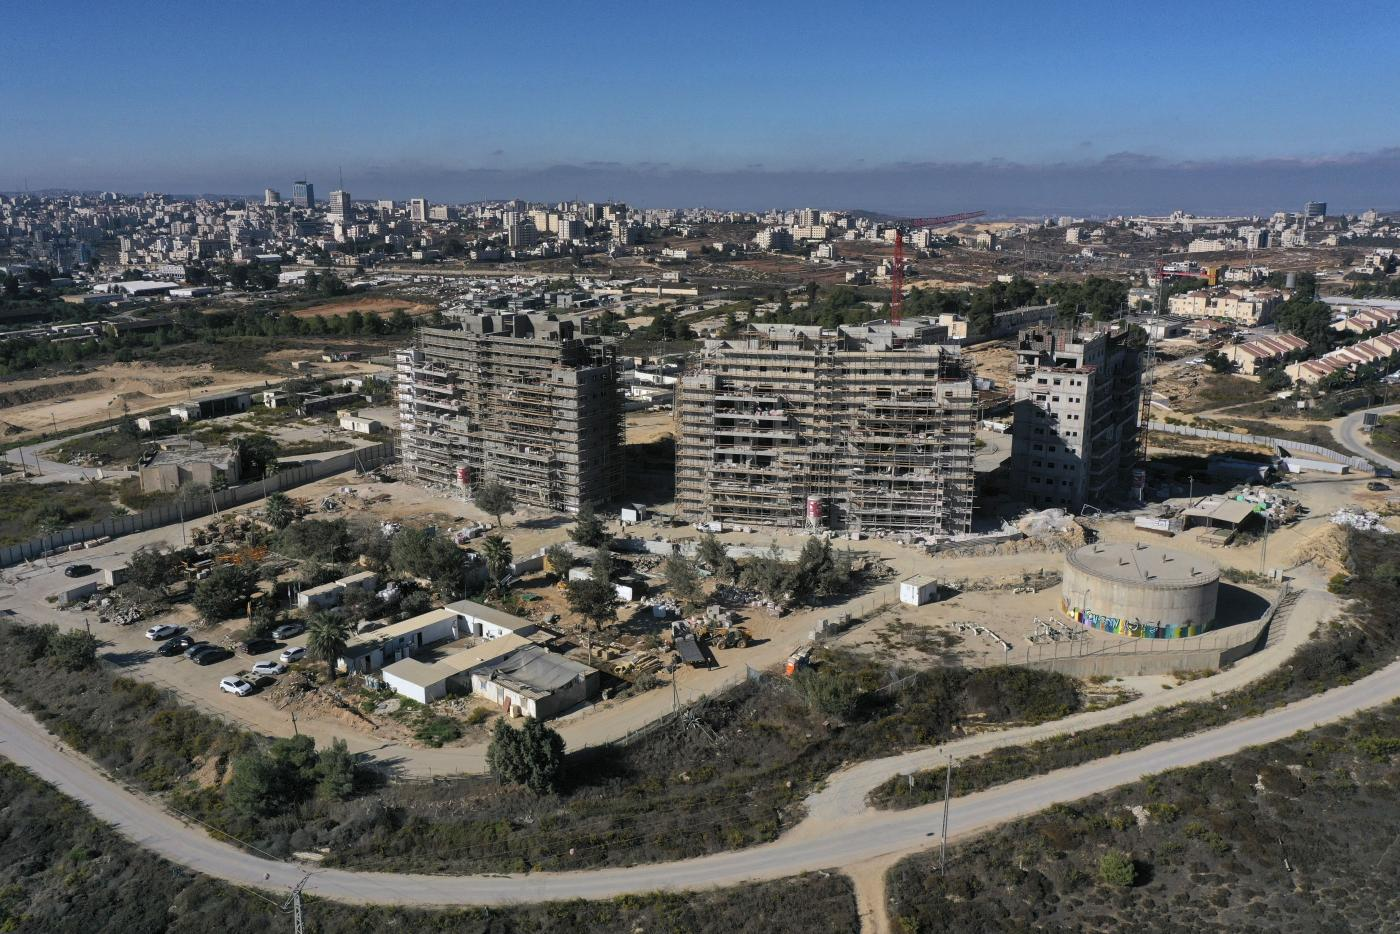 Normalization Dividend: More Israeli Settlements In Occupied Territories, Palestinian Homes Demolished